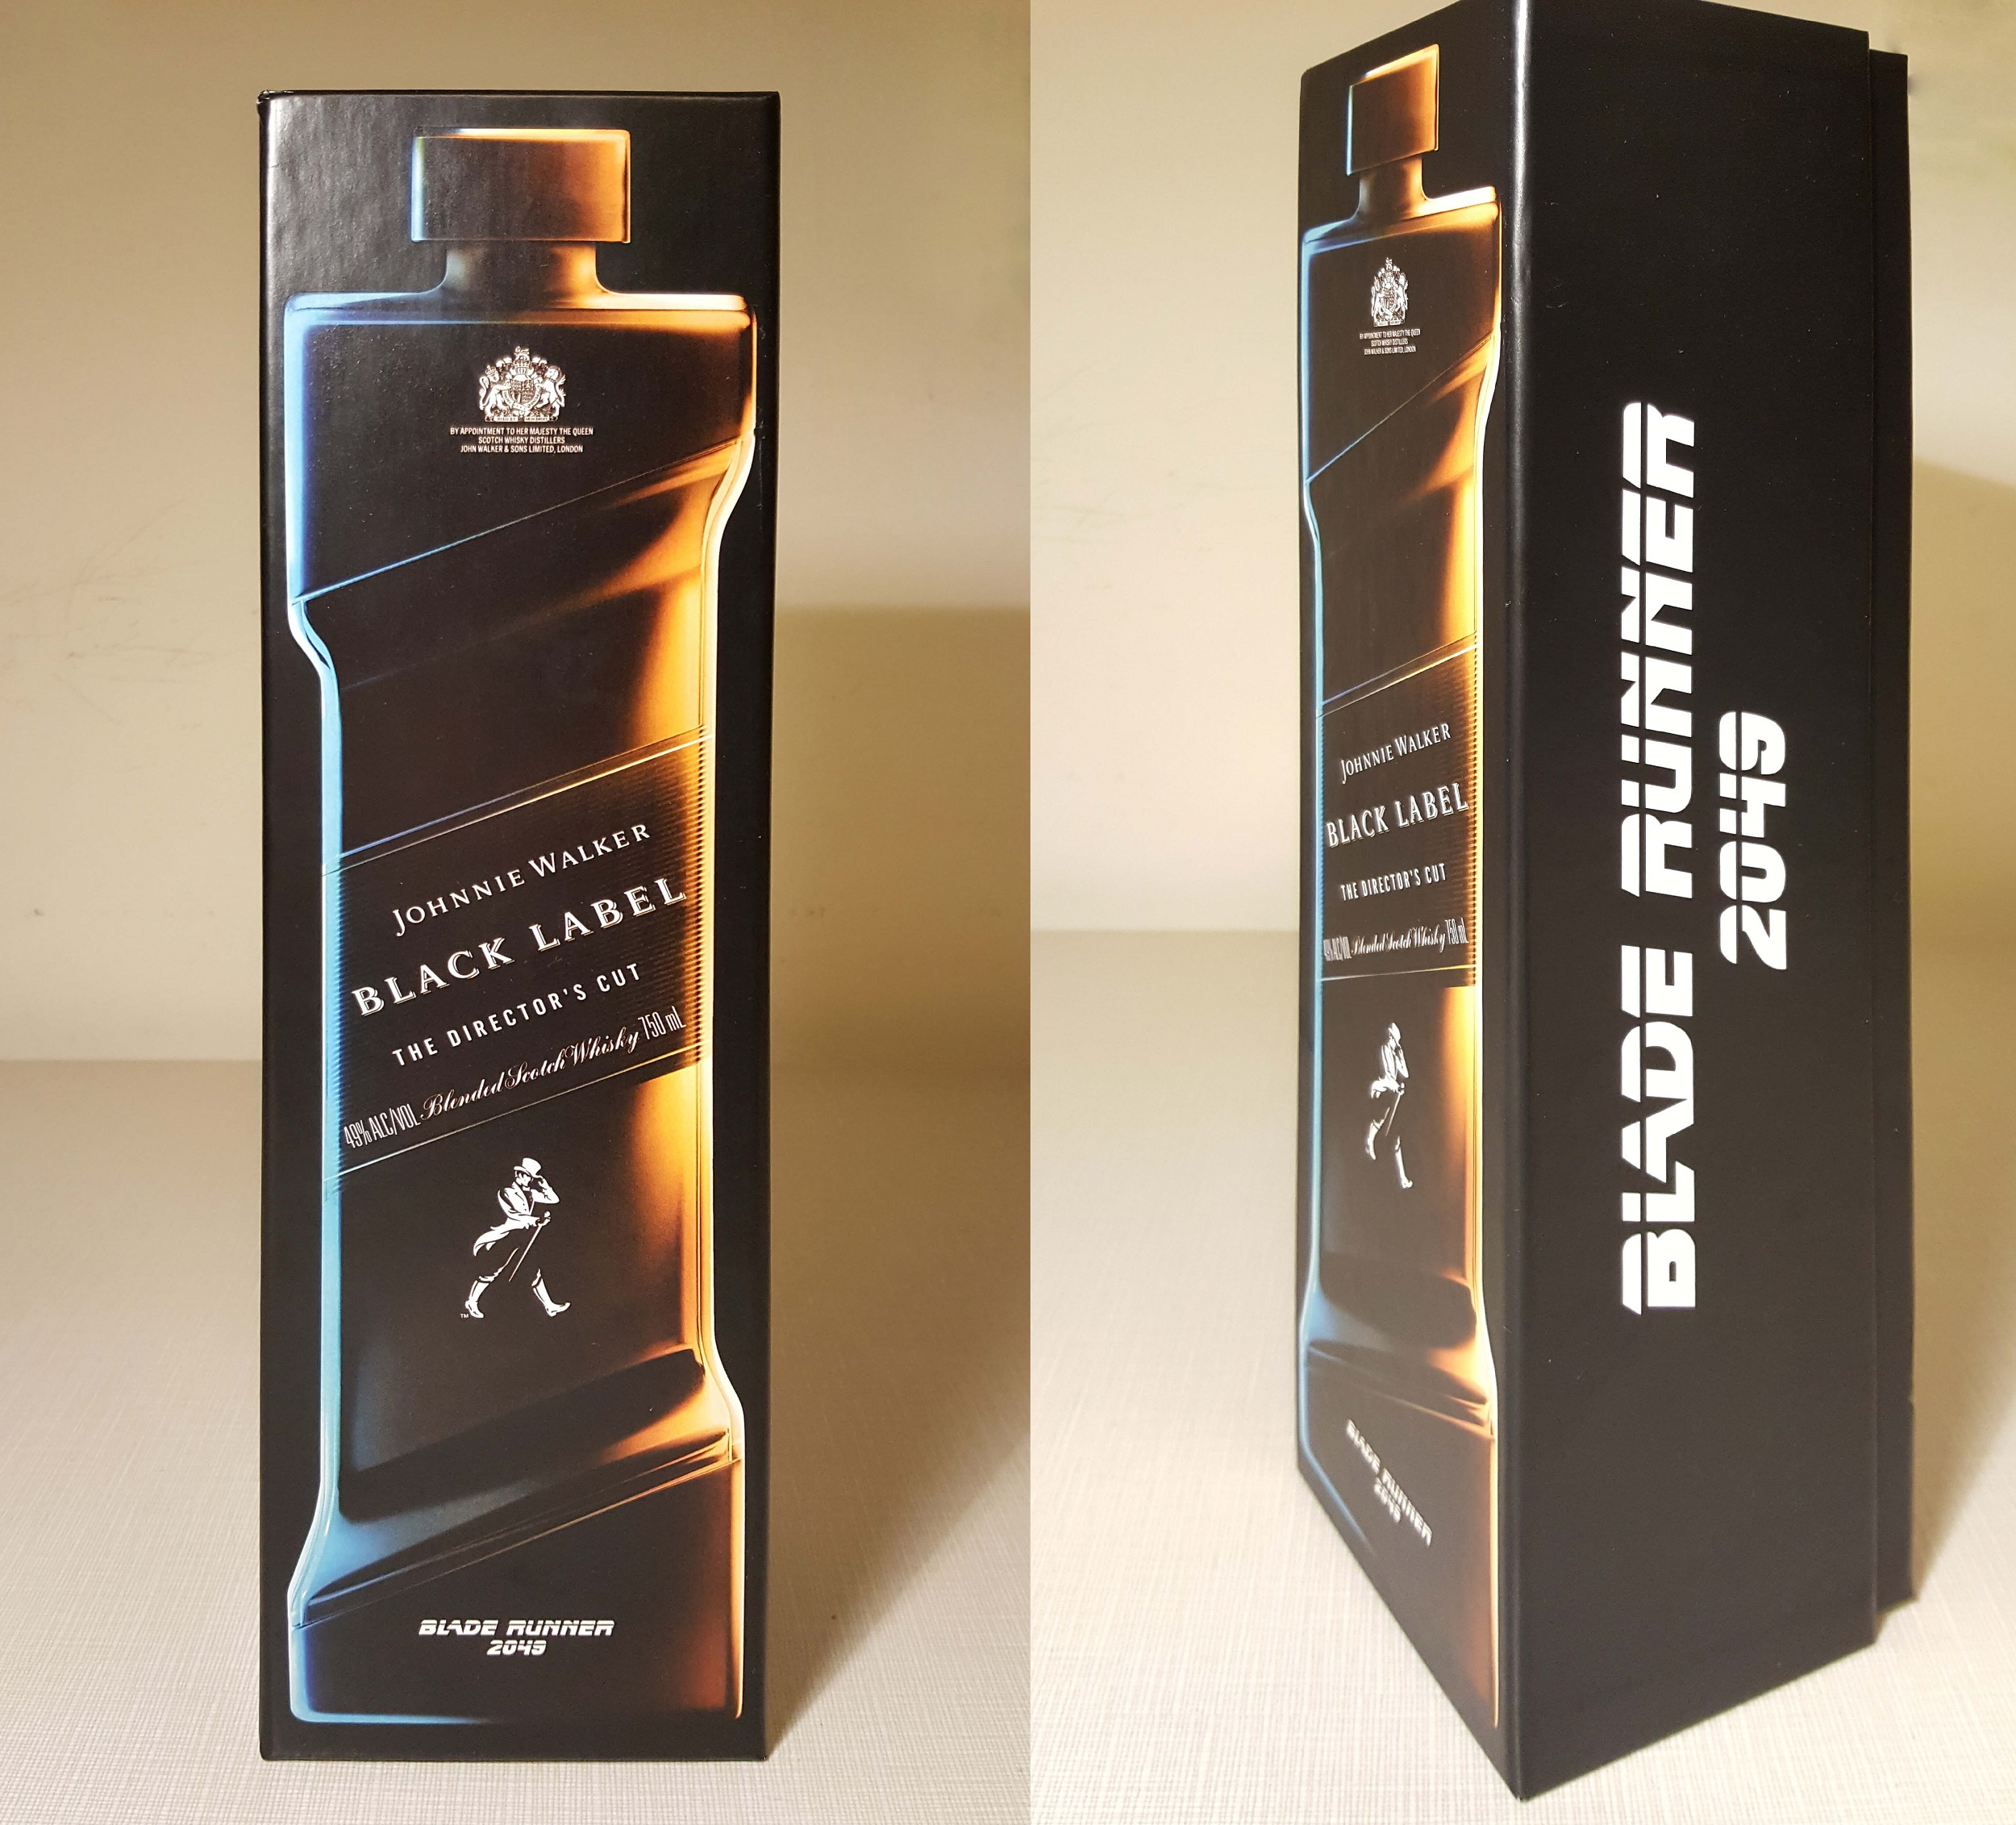 johnnie-walker-black-label-the-directors-cut-blade-runner-2049-whiskey